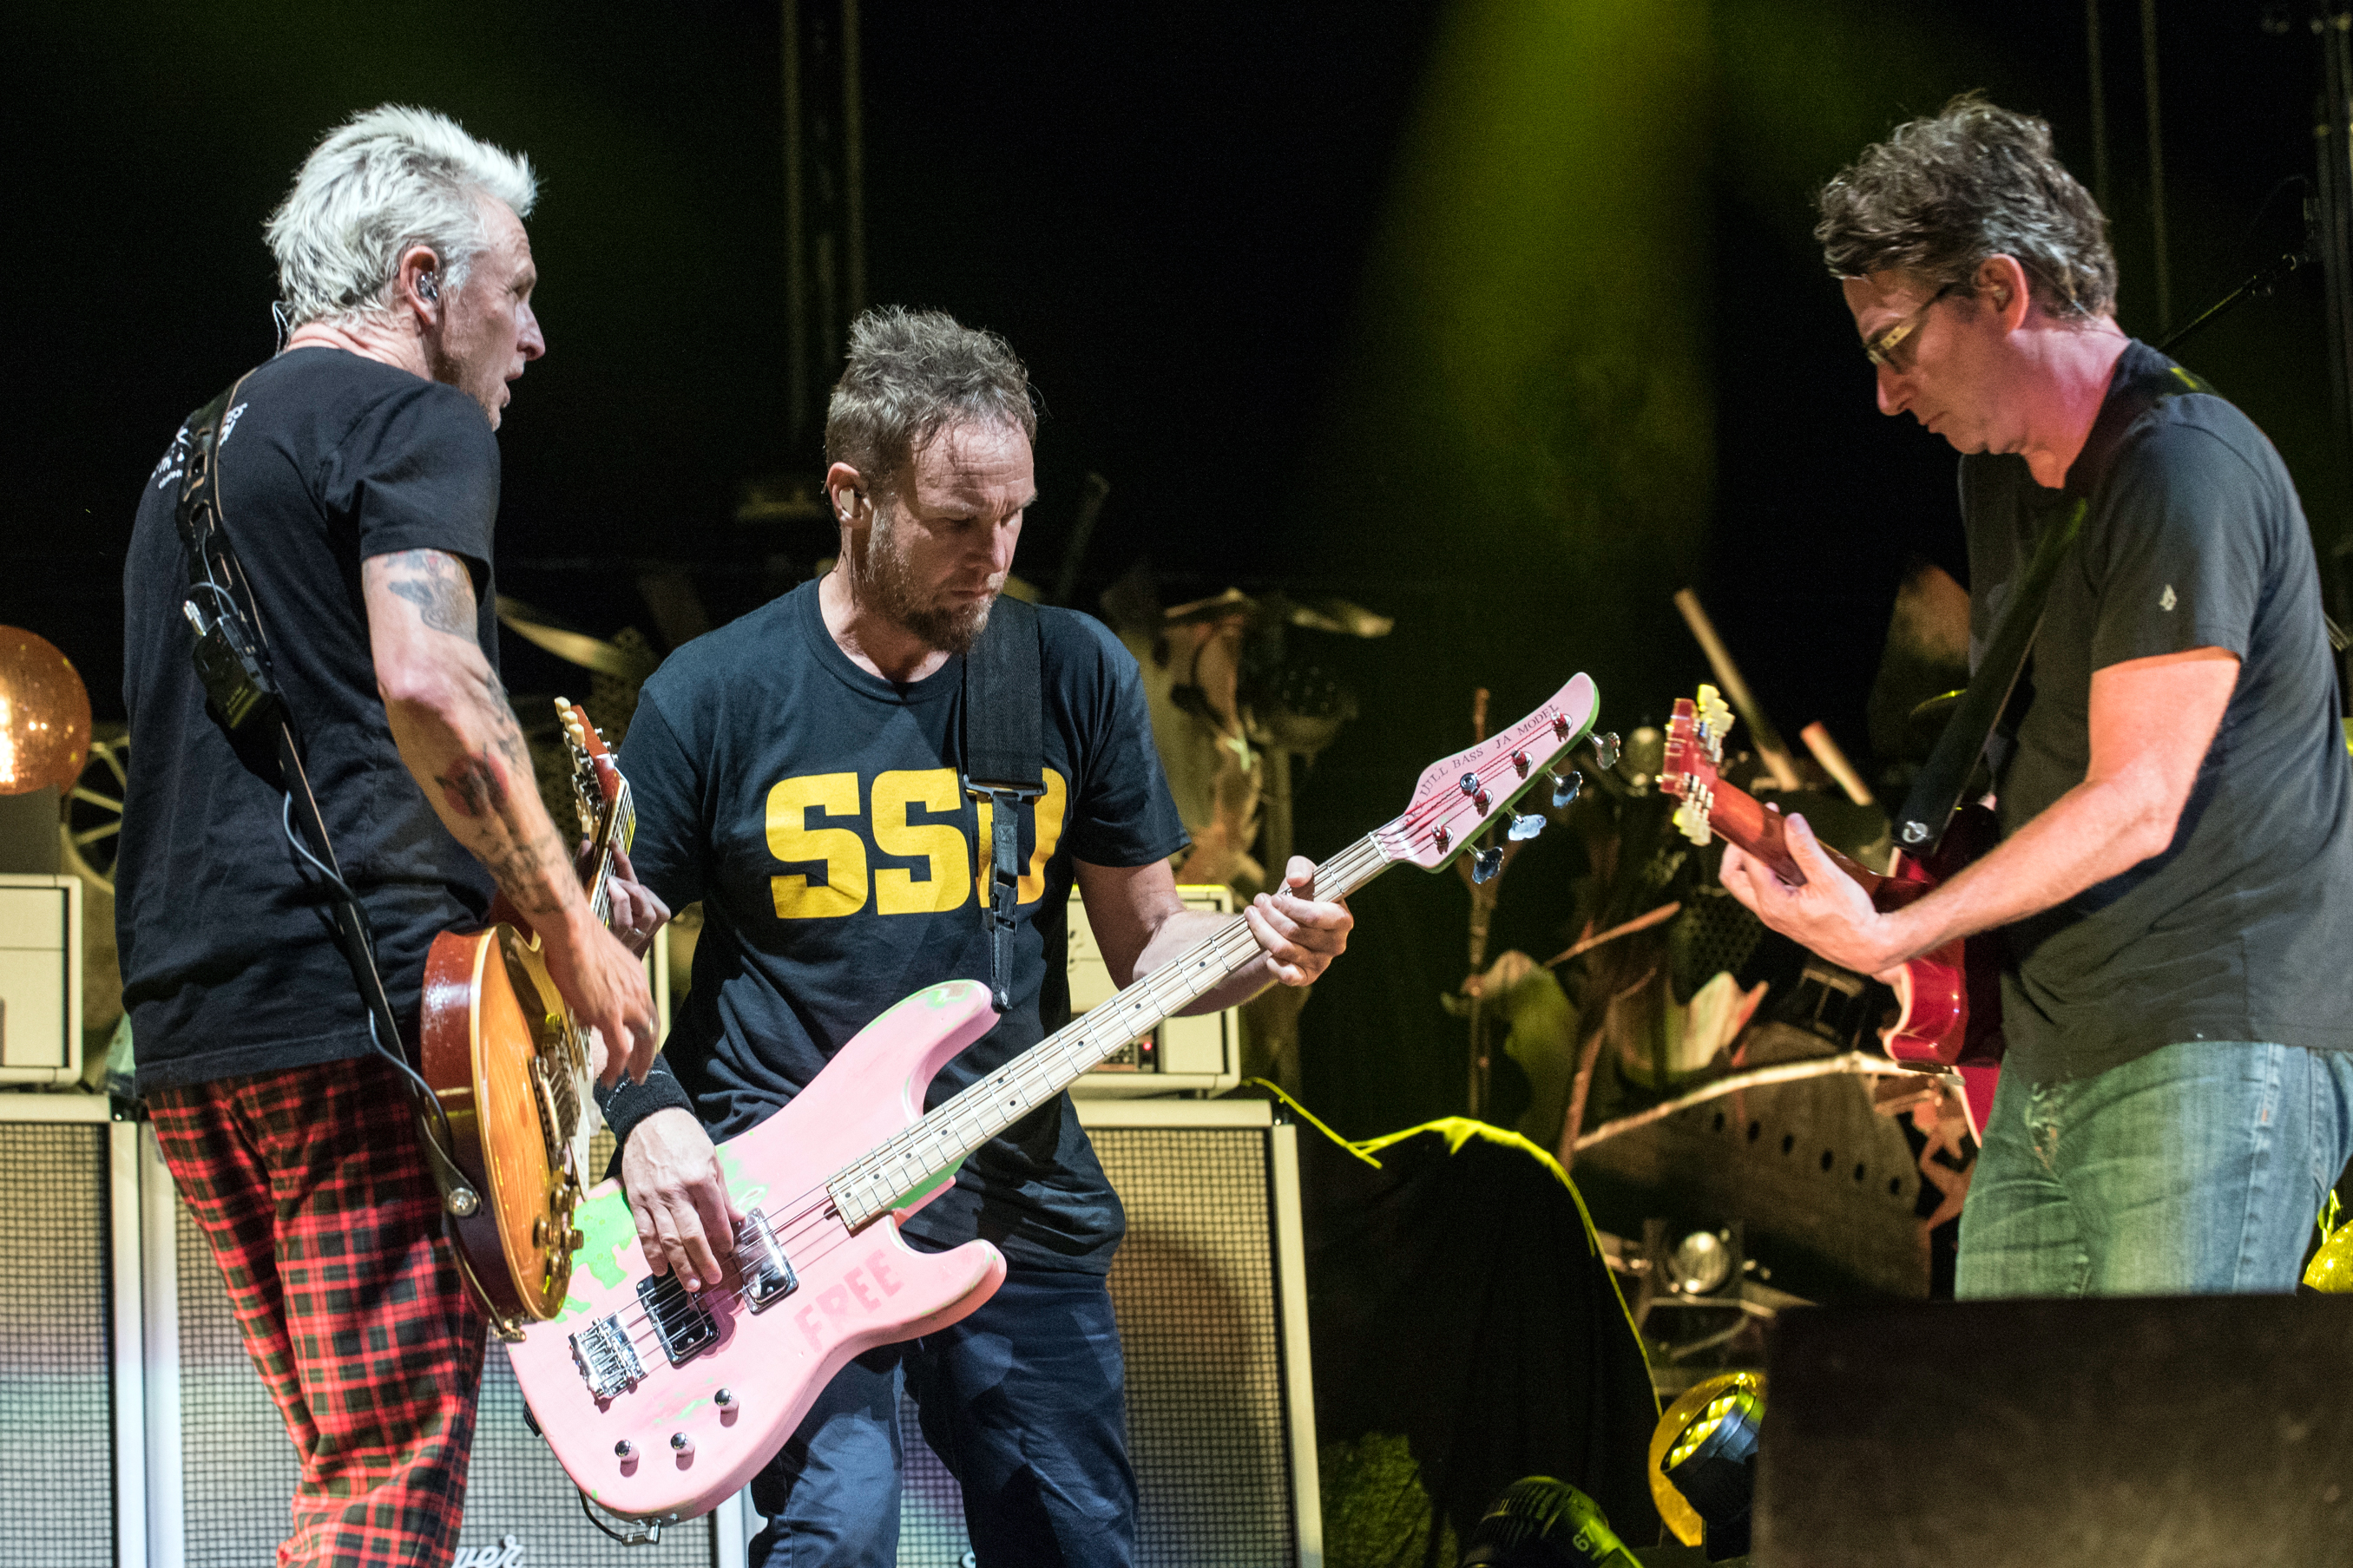 BOSTON MA - SEPTEMBER 2  Lead guitarist Mike McCready L bassist Jeff Ament and guitarist Stone Gossard of Pearl Jam perform live on stage at Fenway Park on September 2 2018 in Boston Massachusetts  Photo by Jim BennettGetty Images